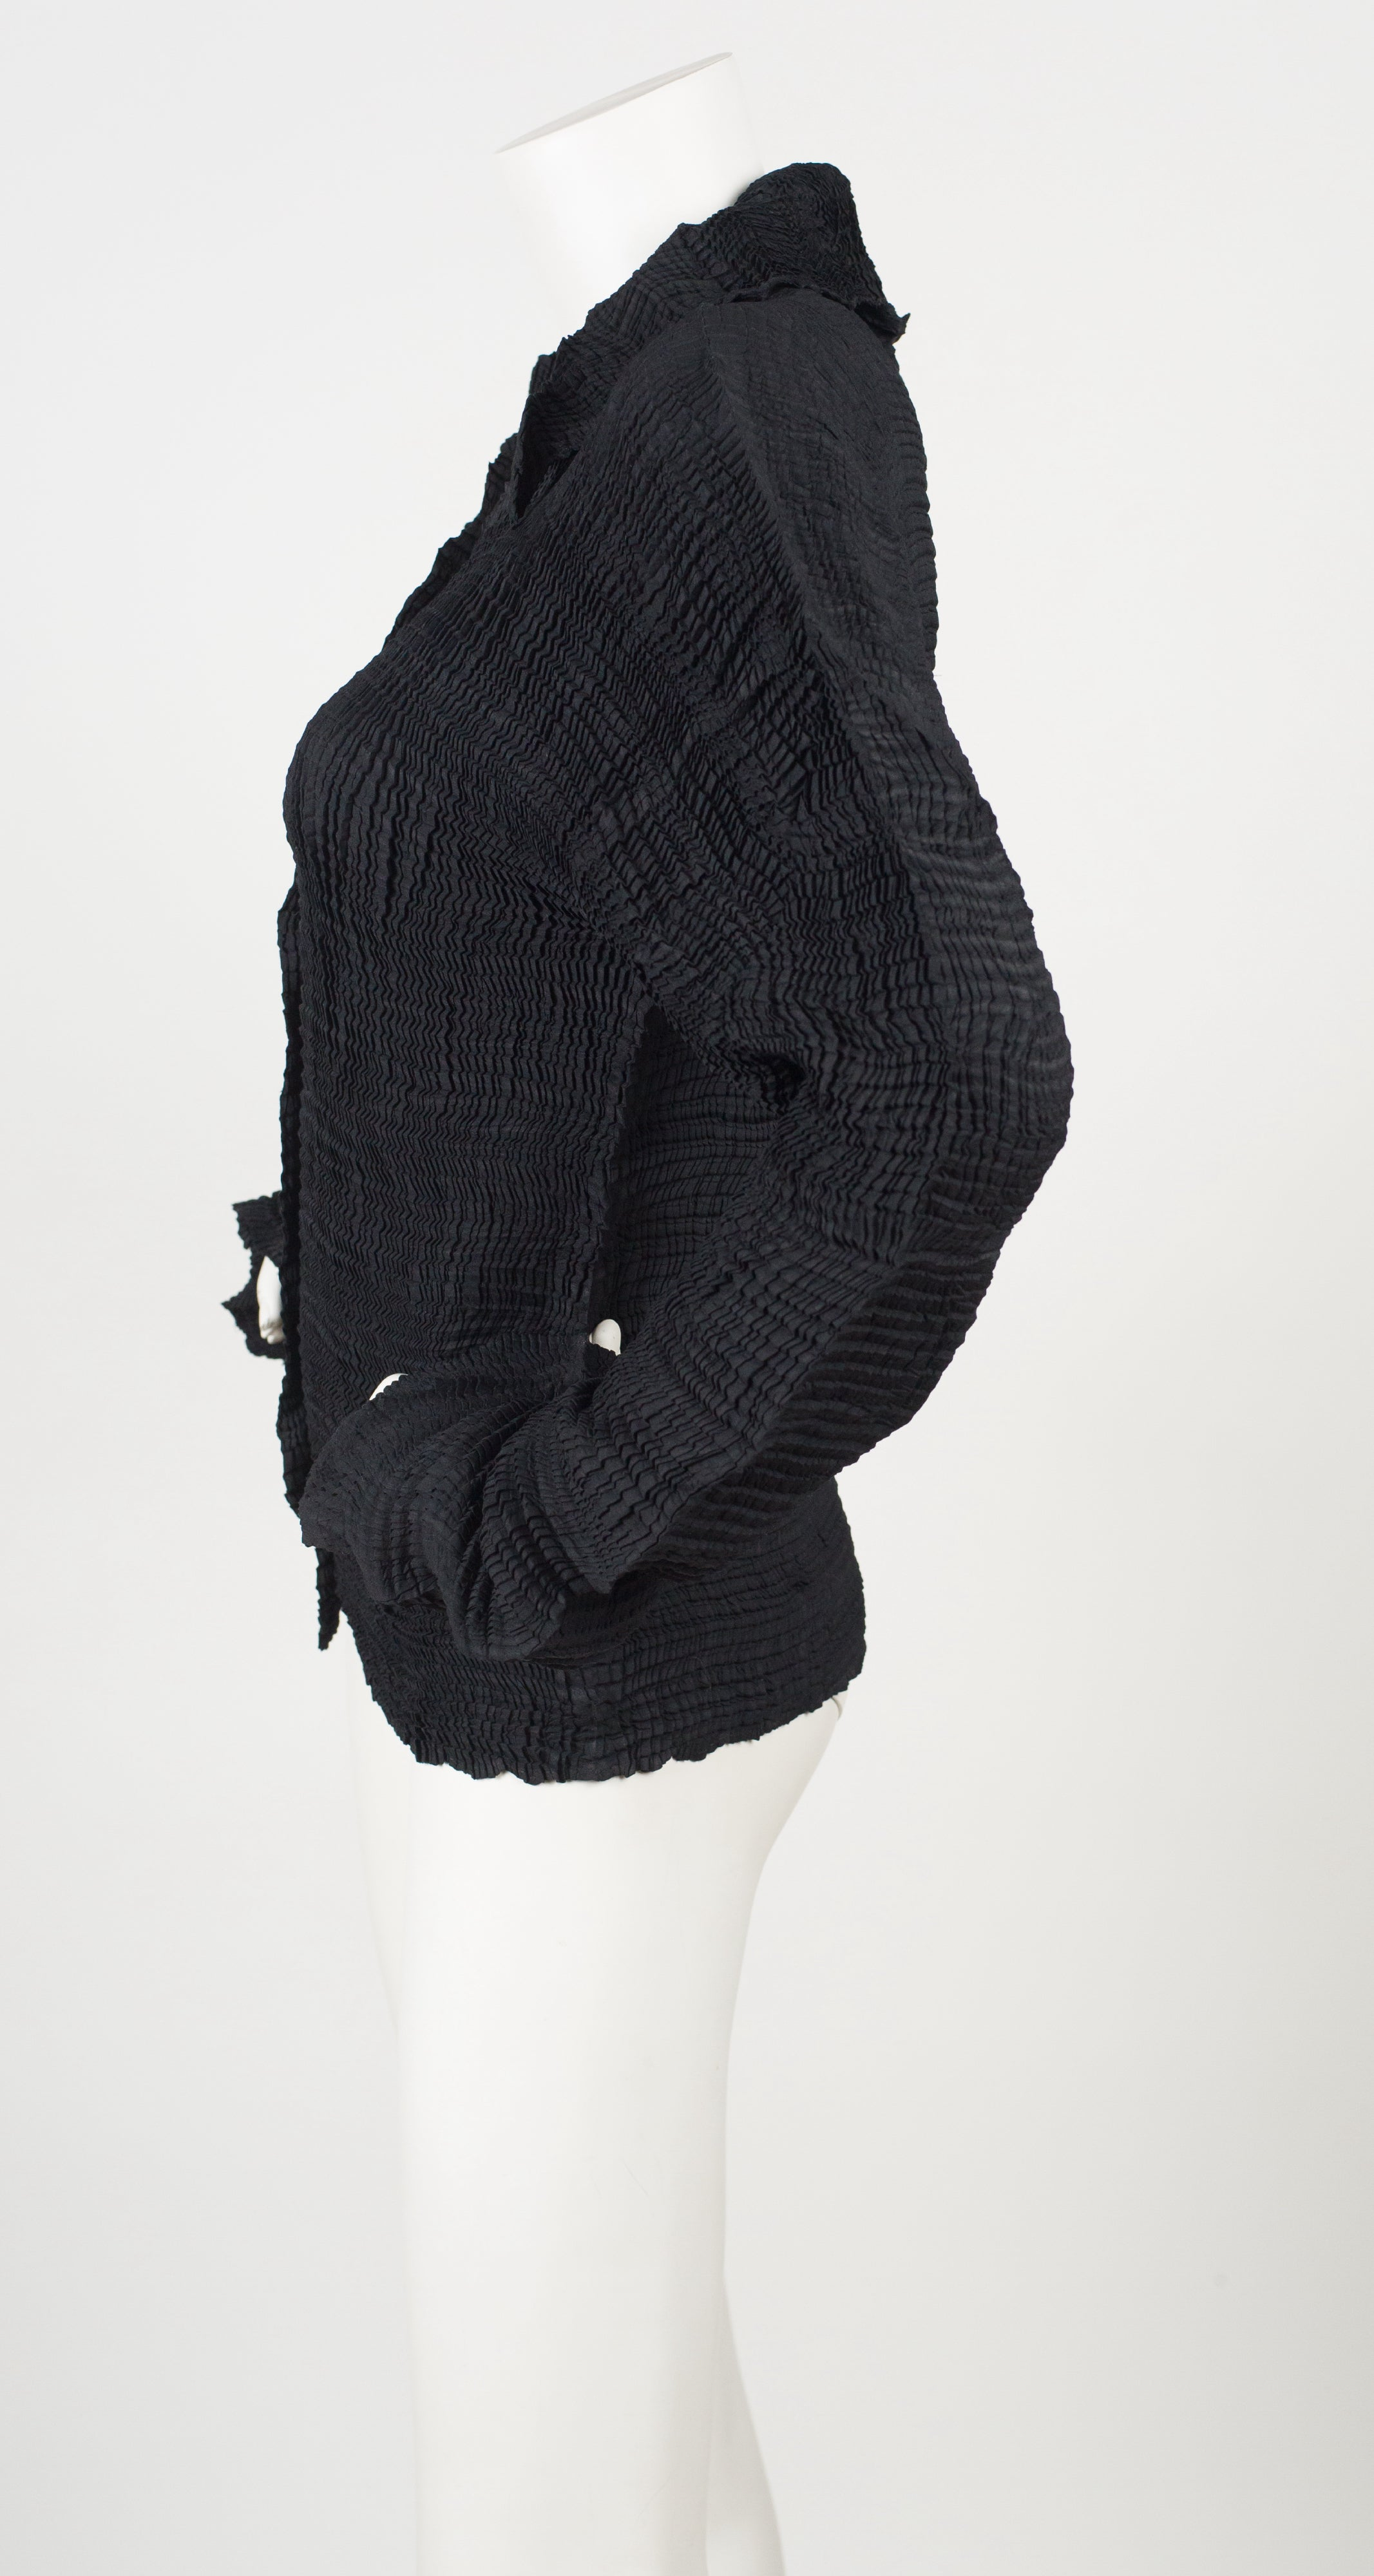 1990s Black Pleated Sculptural Blouse w/ Extra Long Sleeves